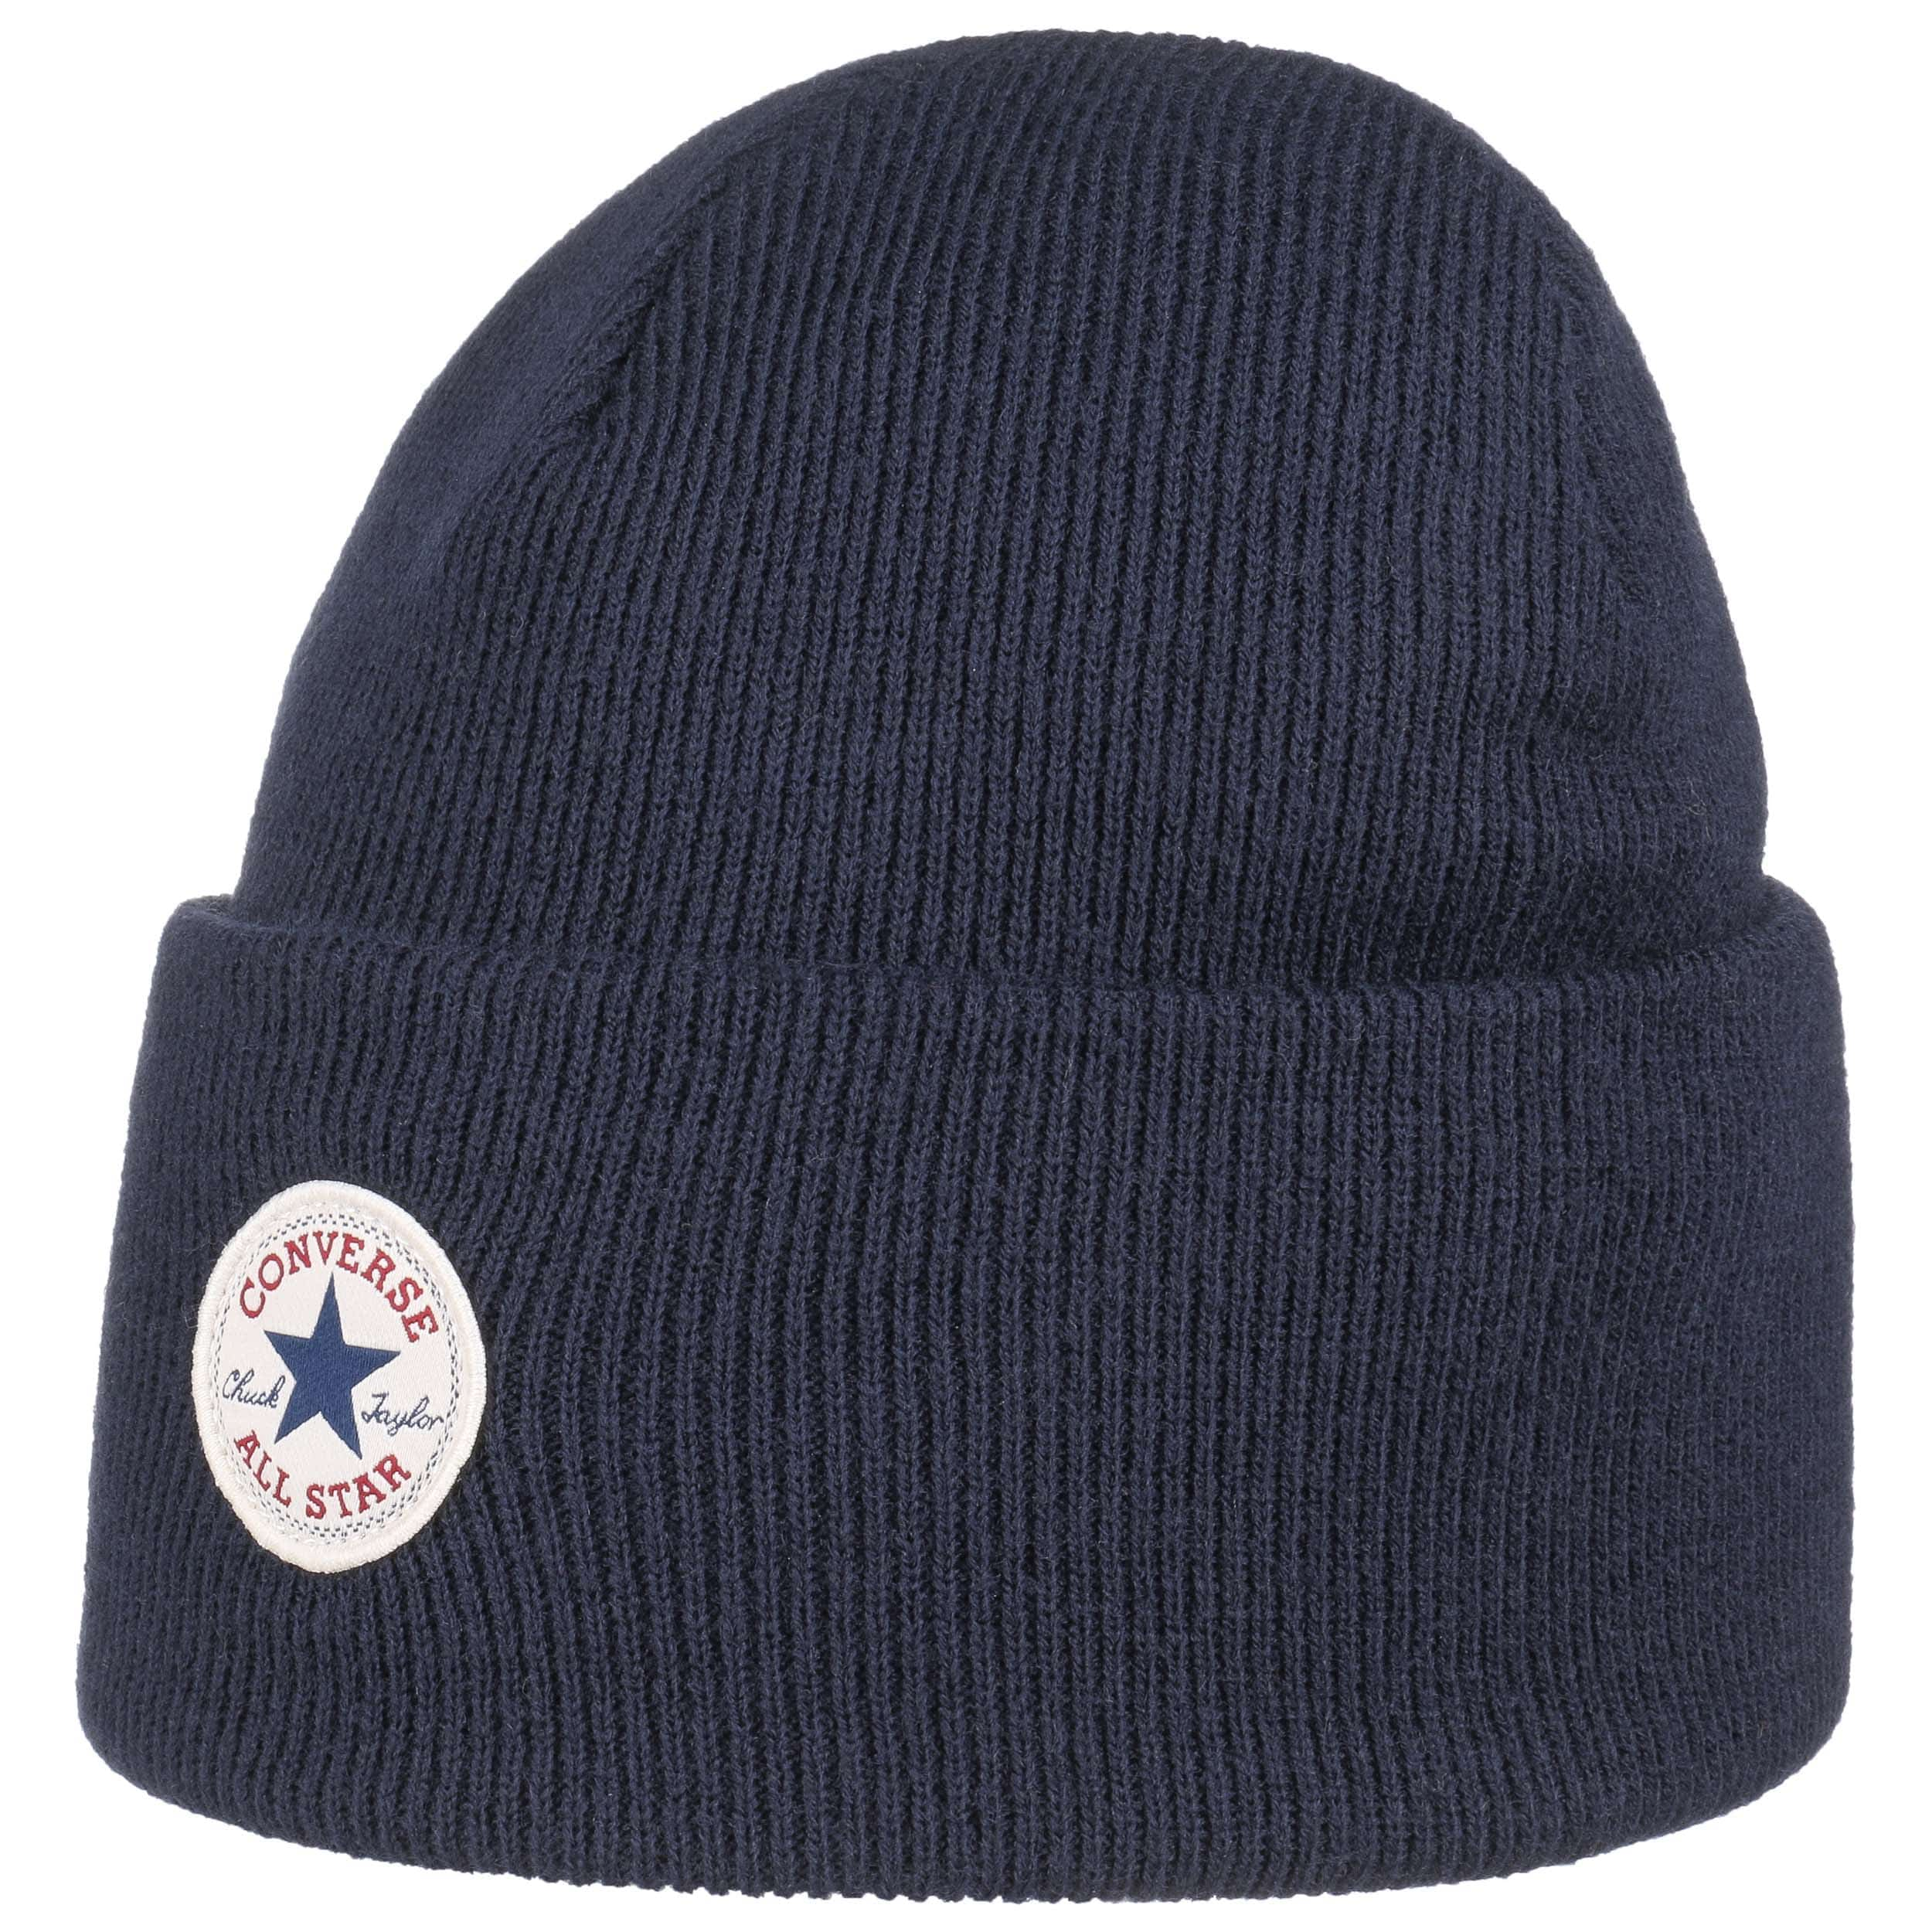 Beanies by bB beyond Beanie empowering artisans and supporting poverty alleviation % satisfaction· change a life· handmade by artisans· 1 beanie = 5 meals.